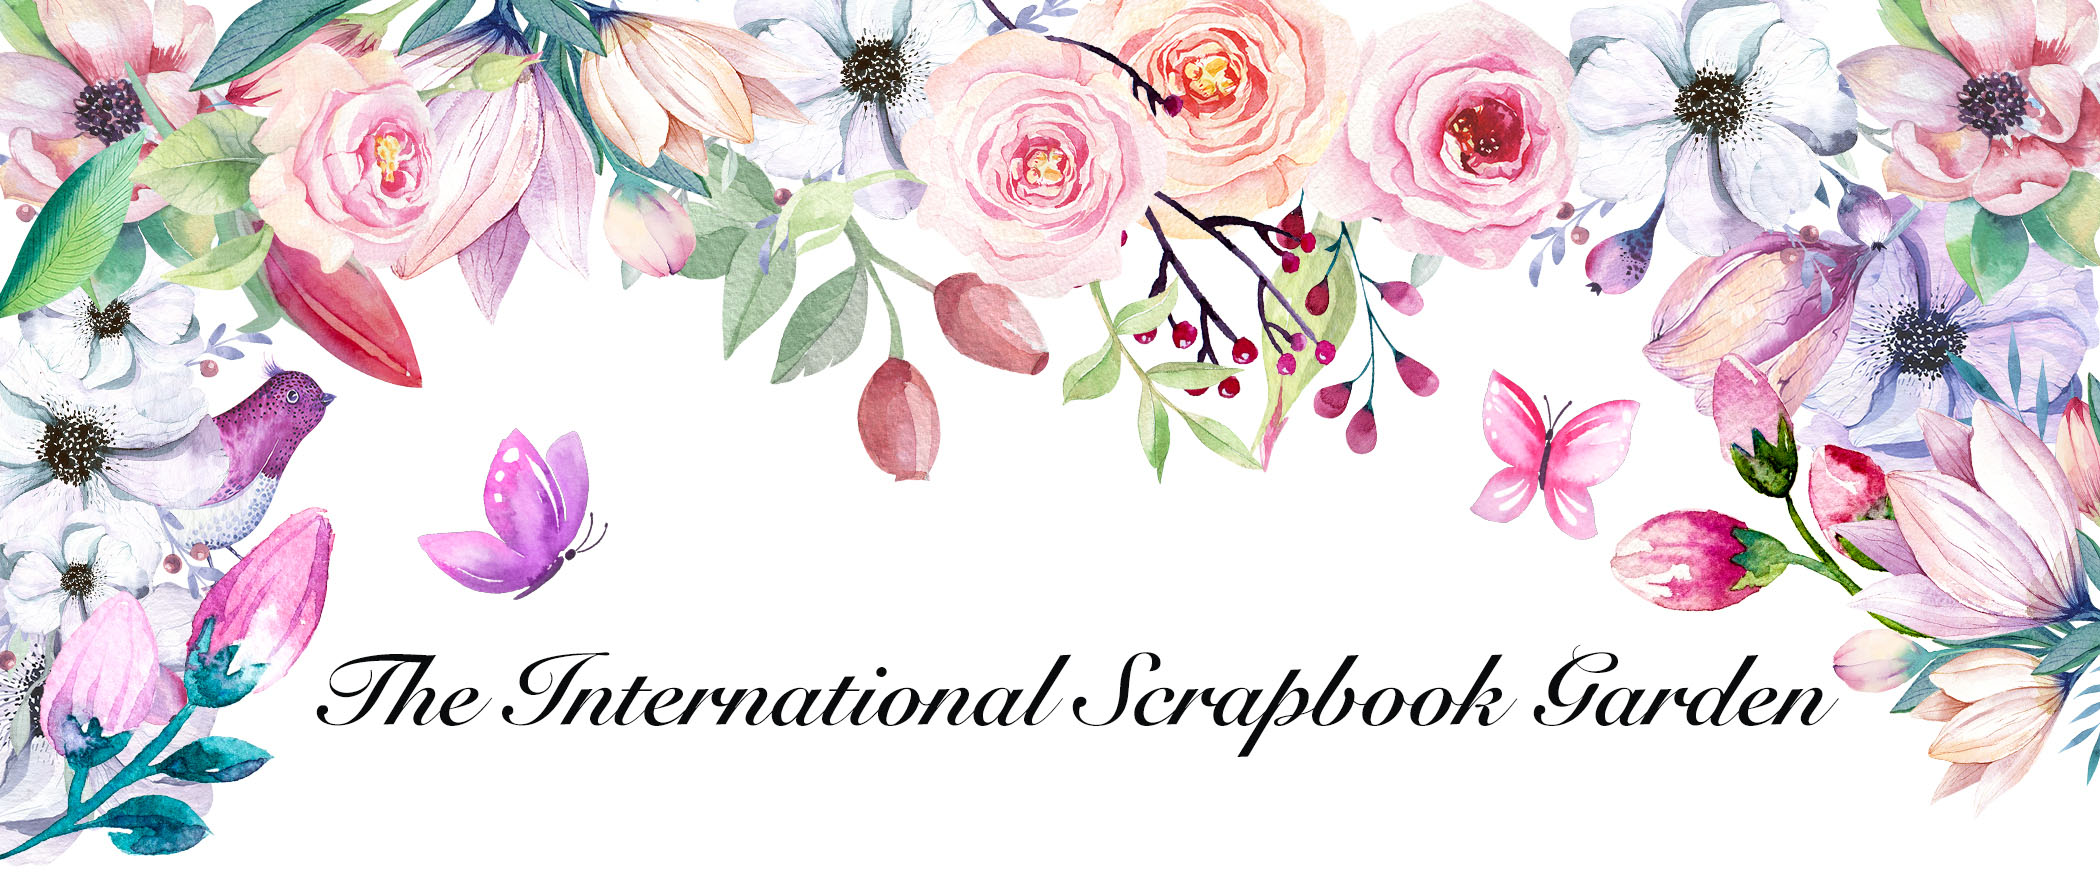 The International Scrapbook Garden